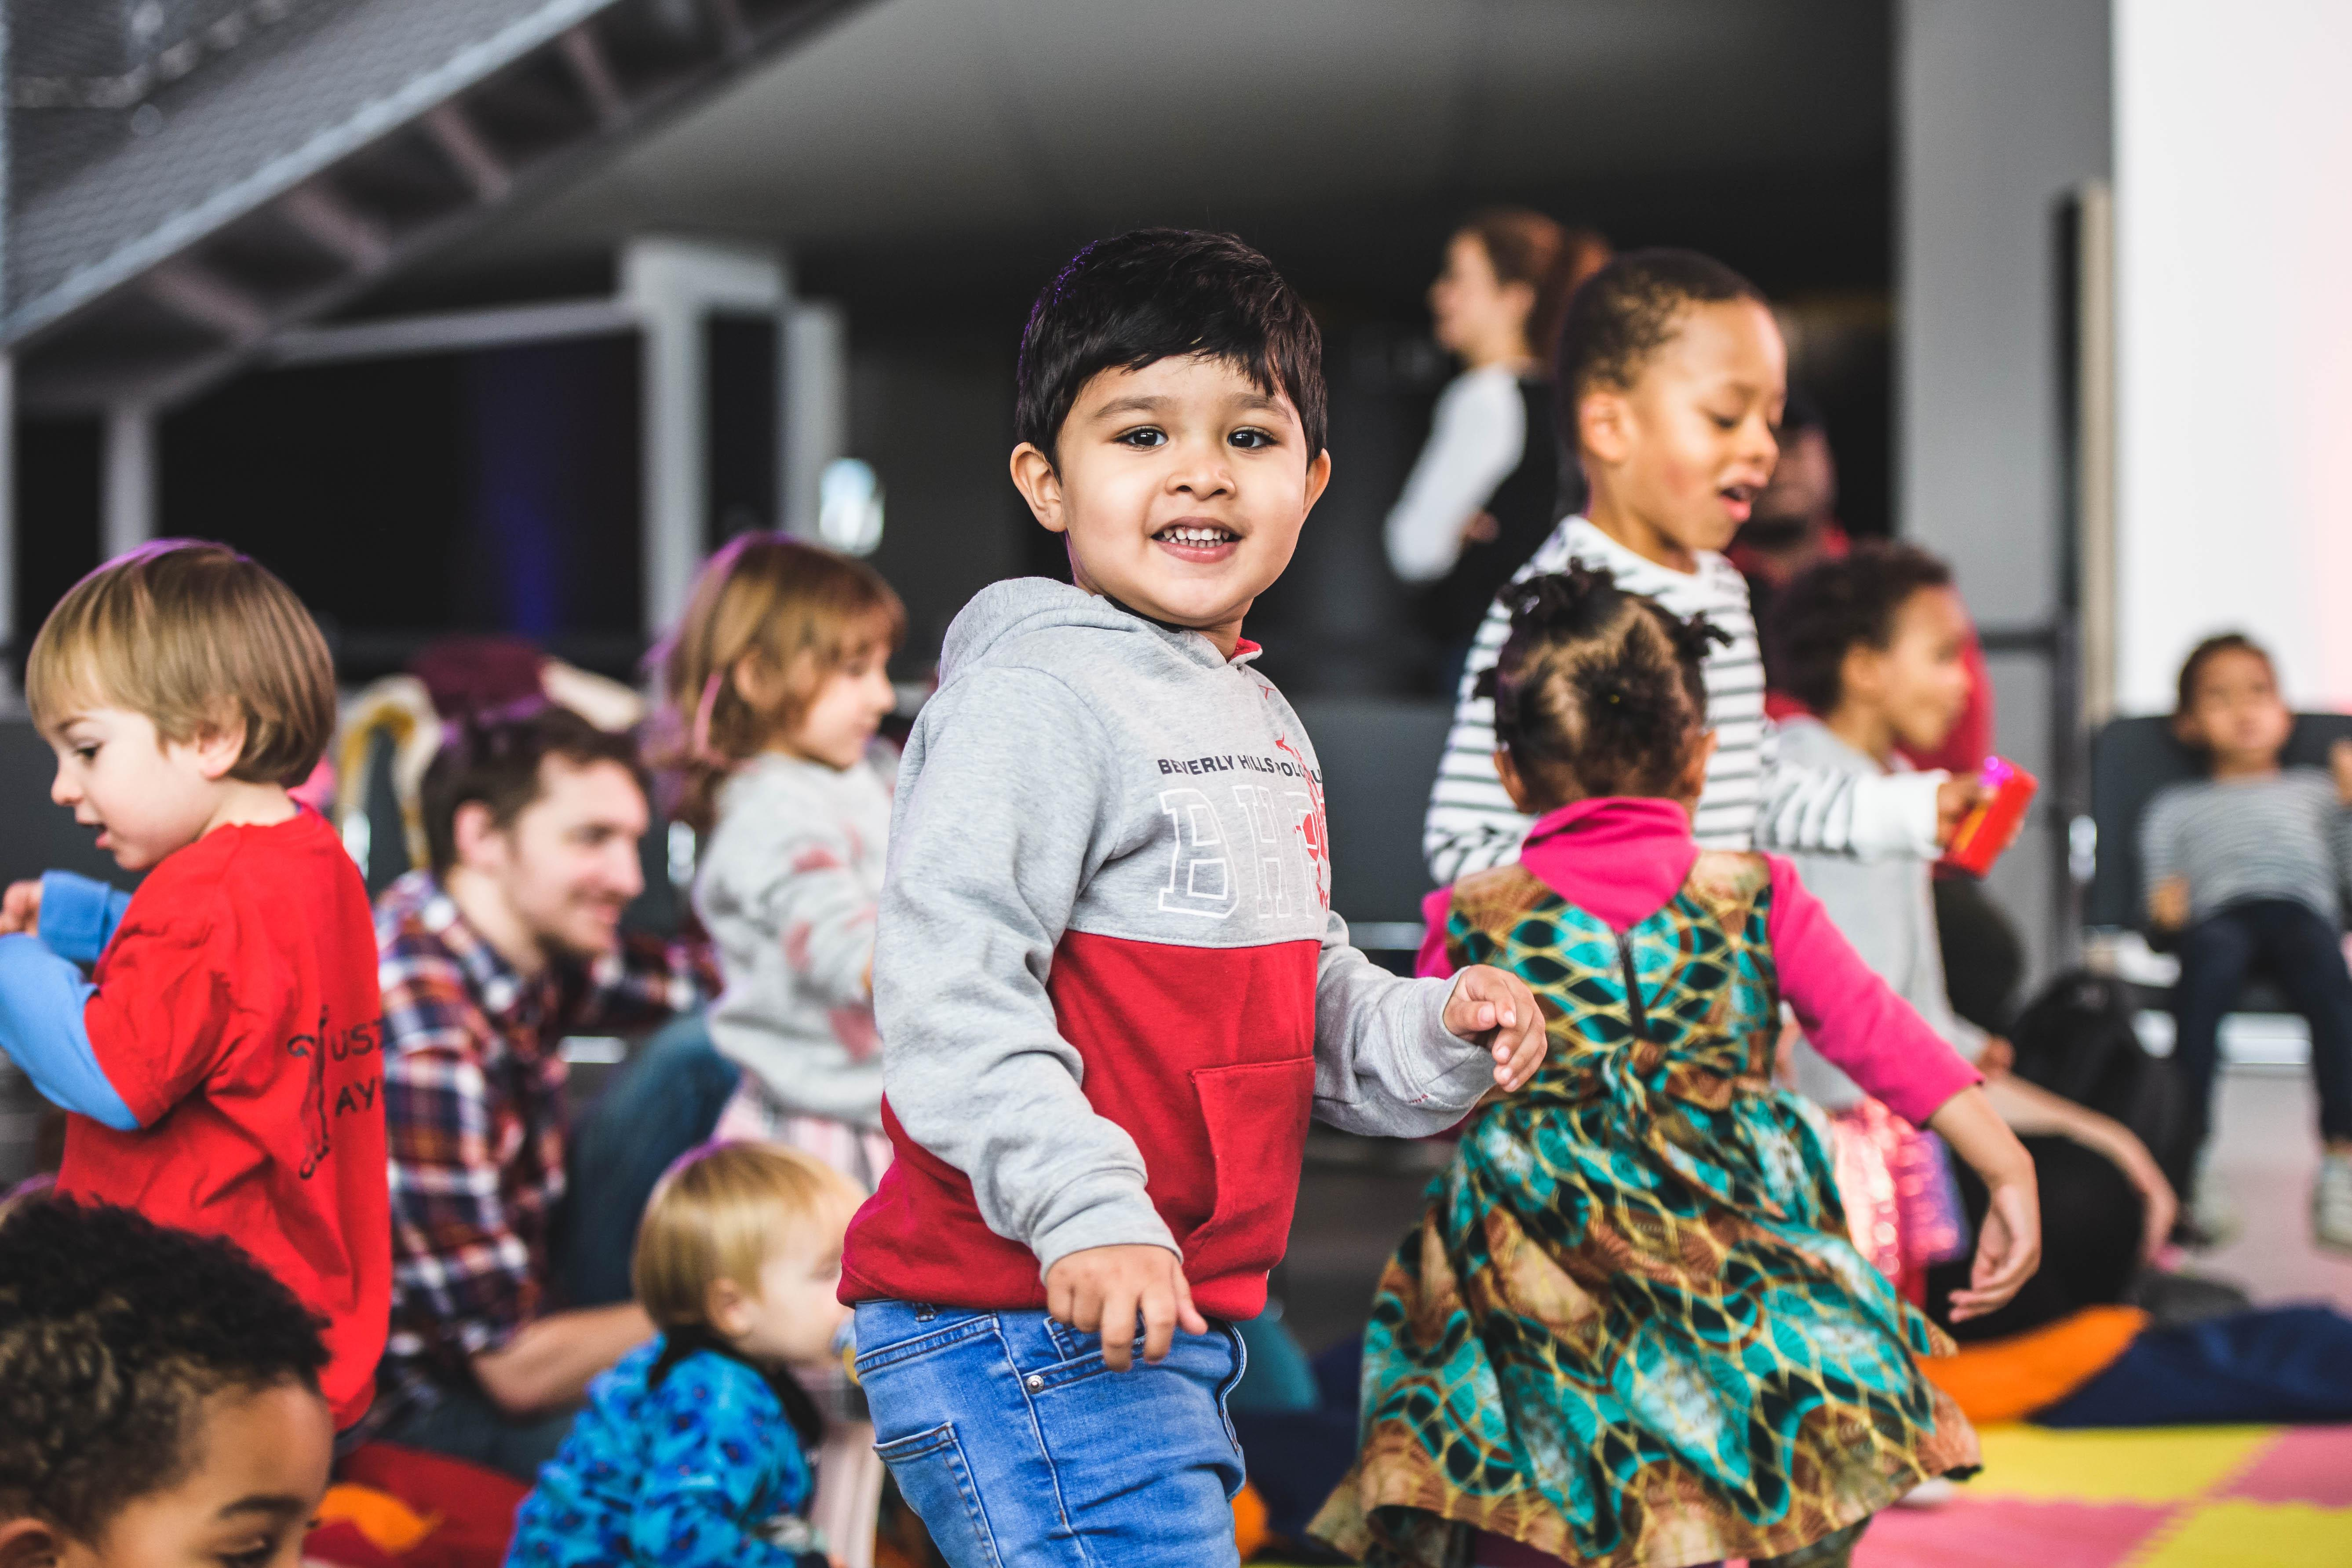 A group of toddlers at the London Jazz Festival